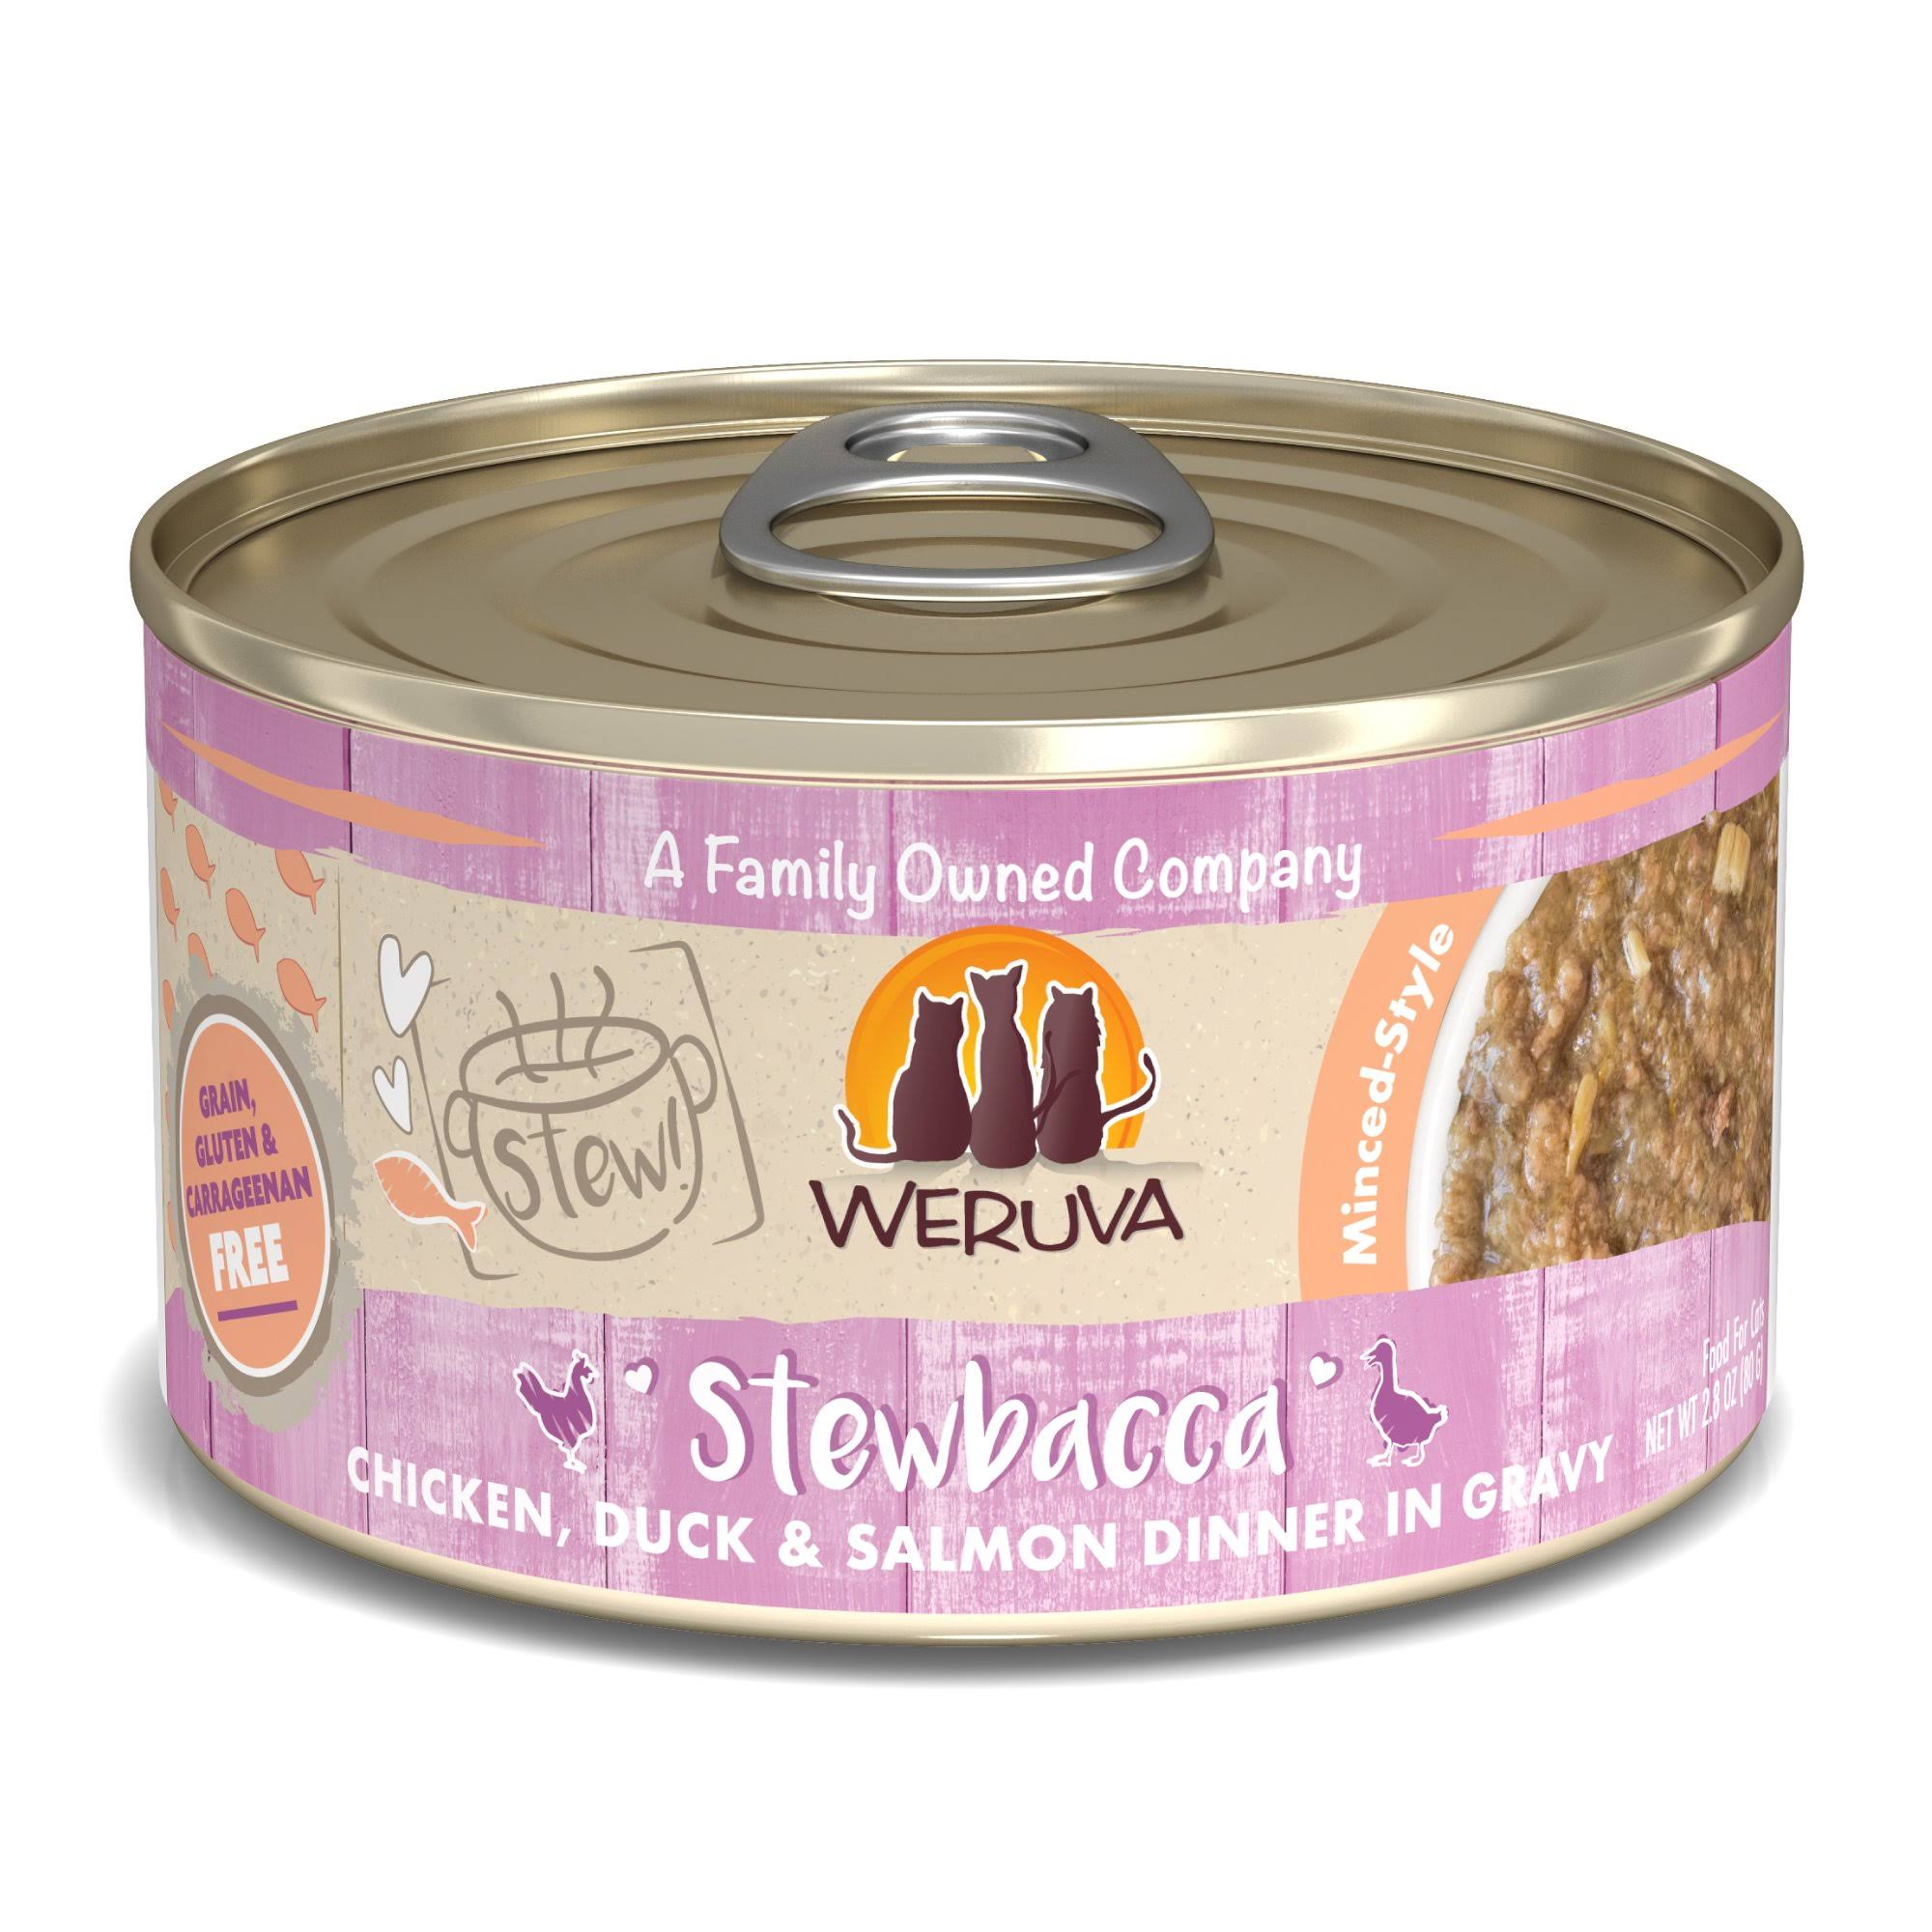 Weruva Stew! Stewbacca Chicken, Duck & Salmon Dinner in Gravy Food for Cats - 2.8 oz